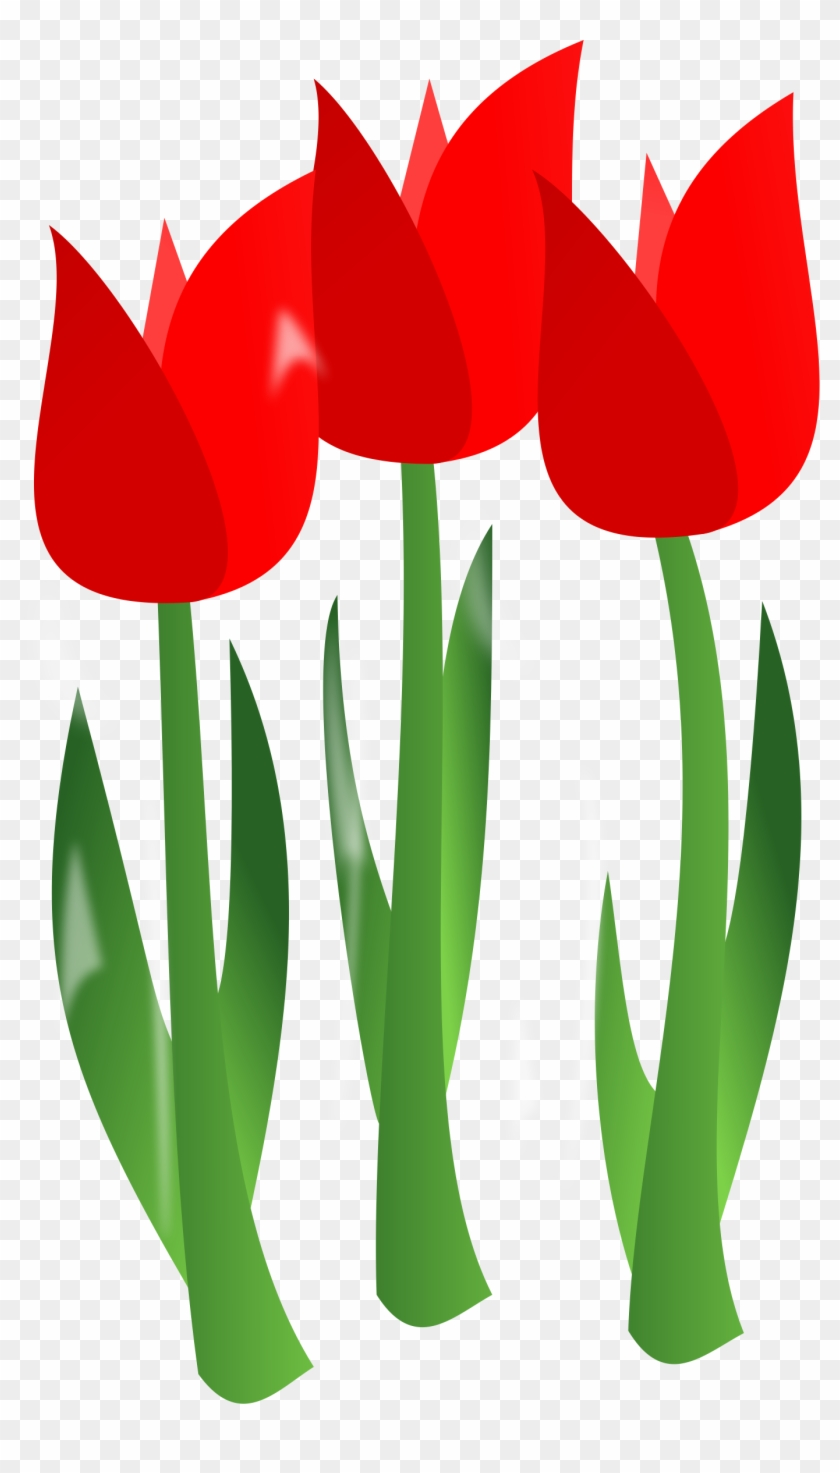 April Clip Art 2 - May Flowers Clip Art #13251